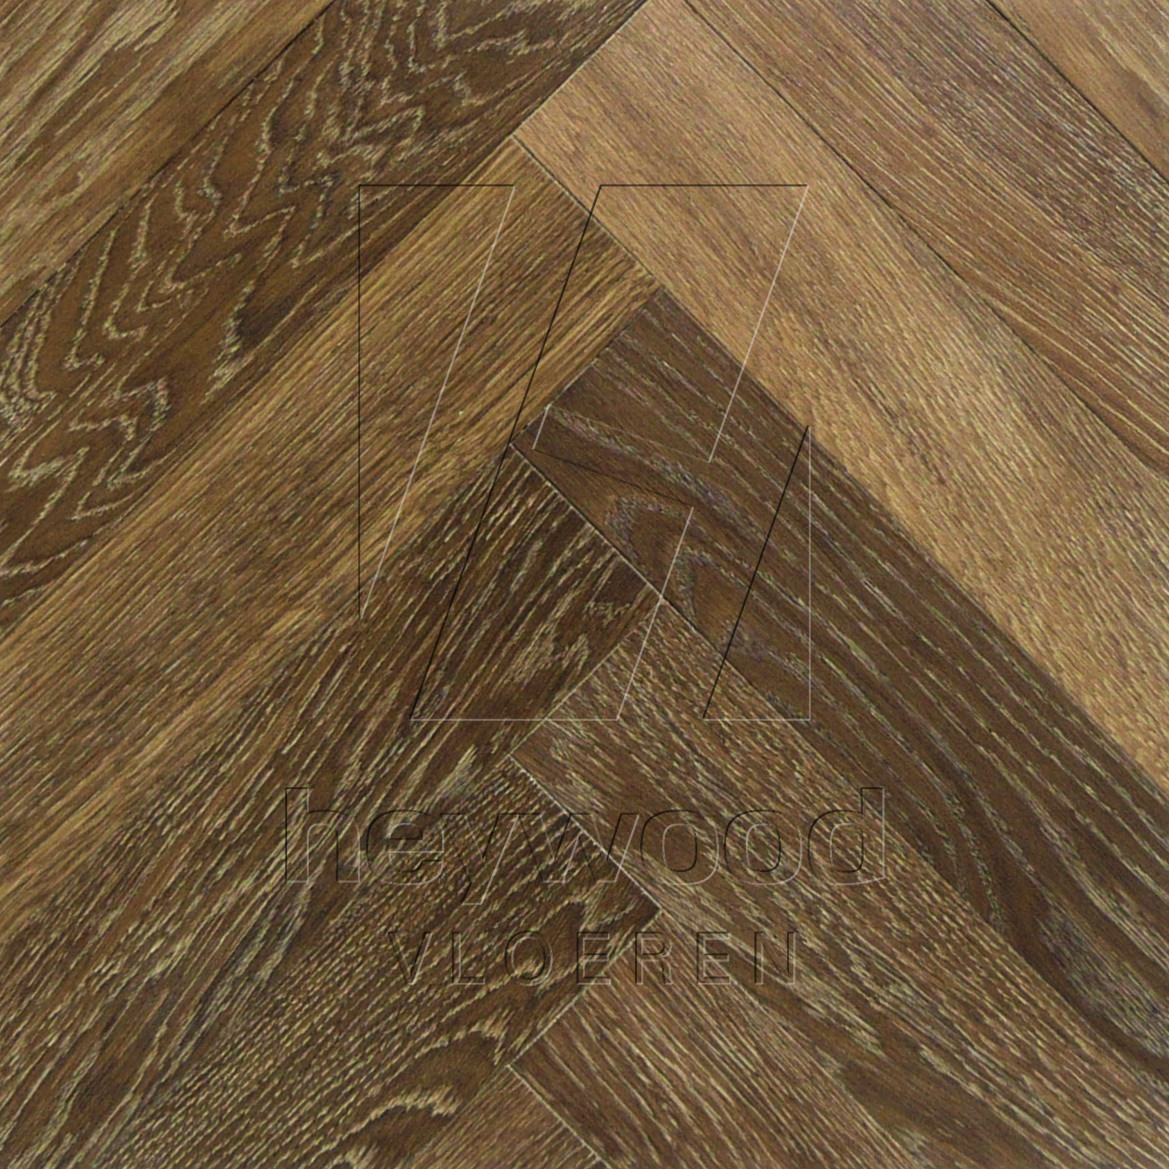 Monaco in Herringbone of Pattern & Panel Floors